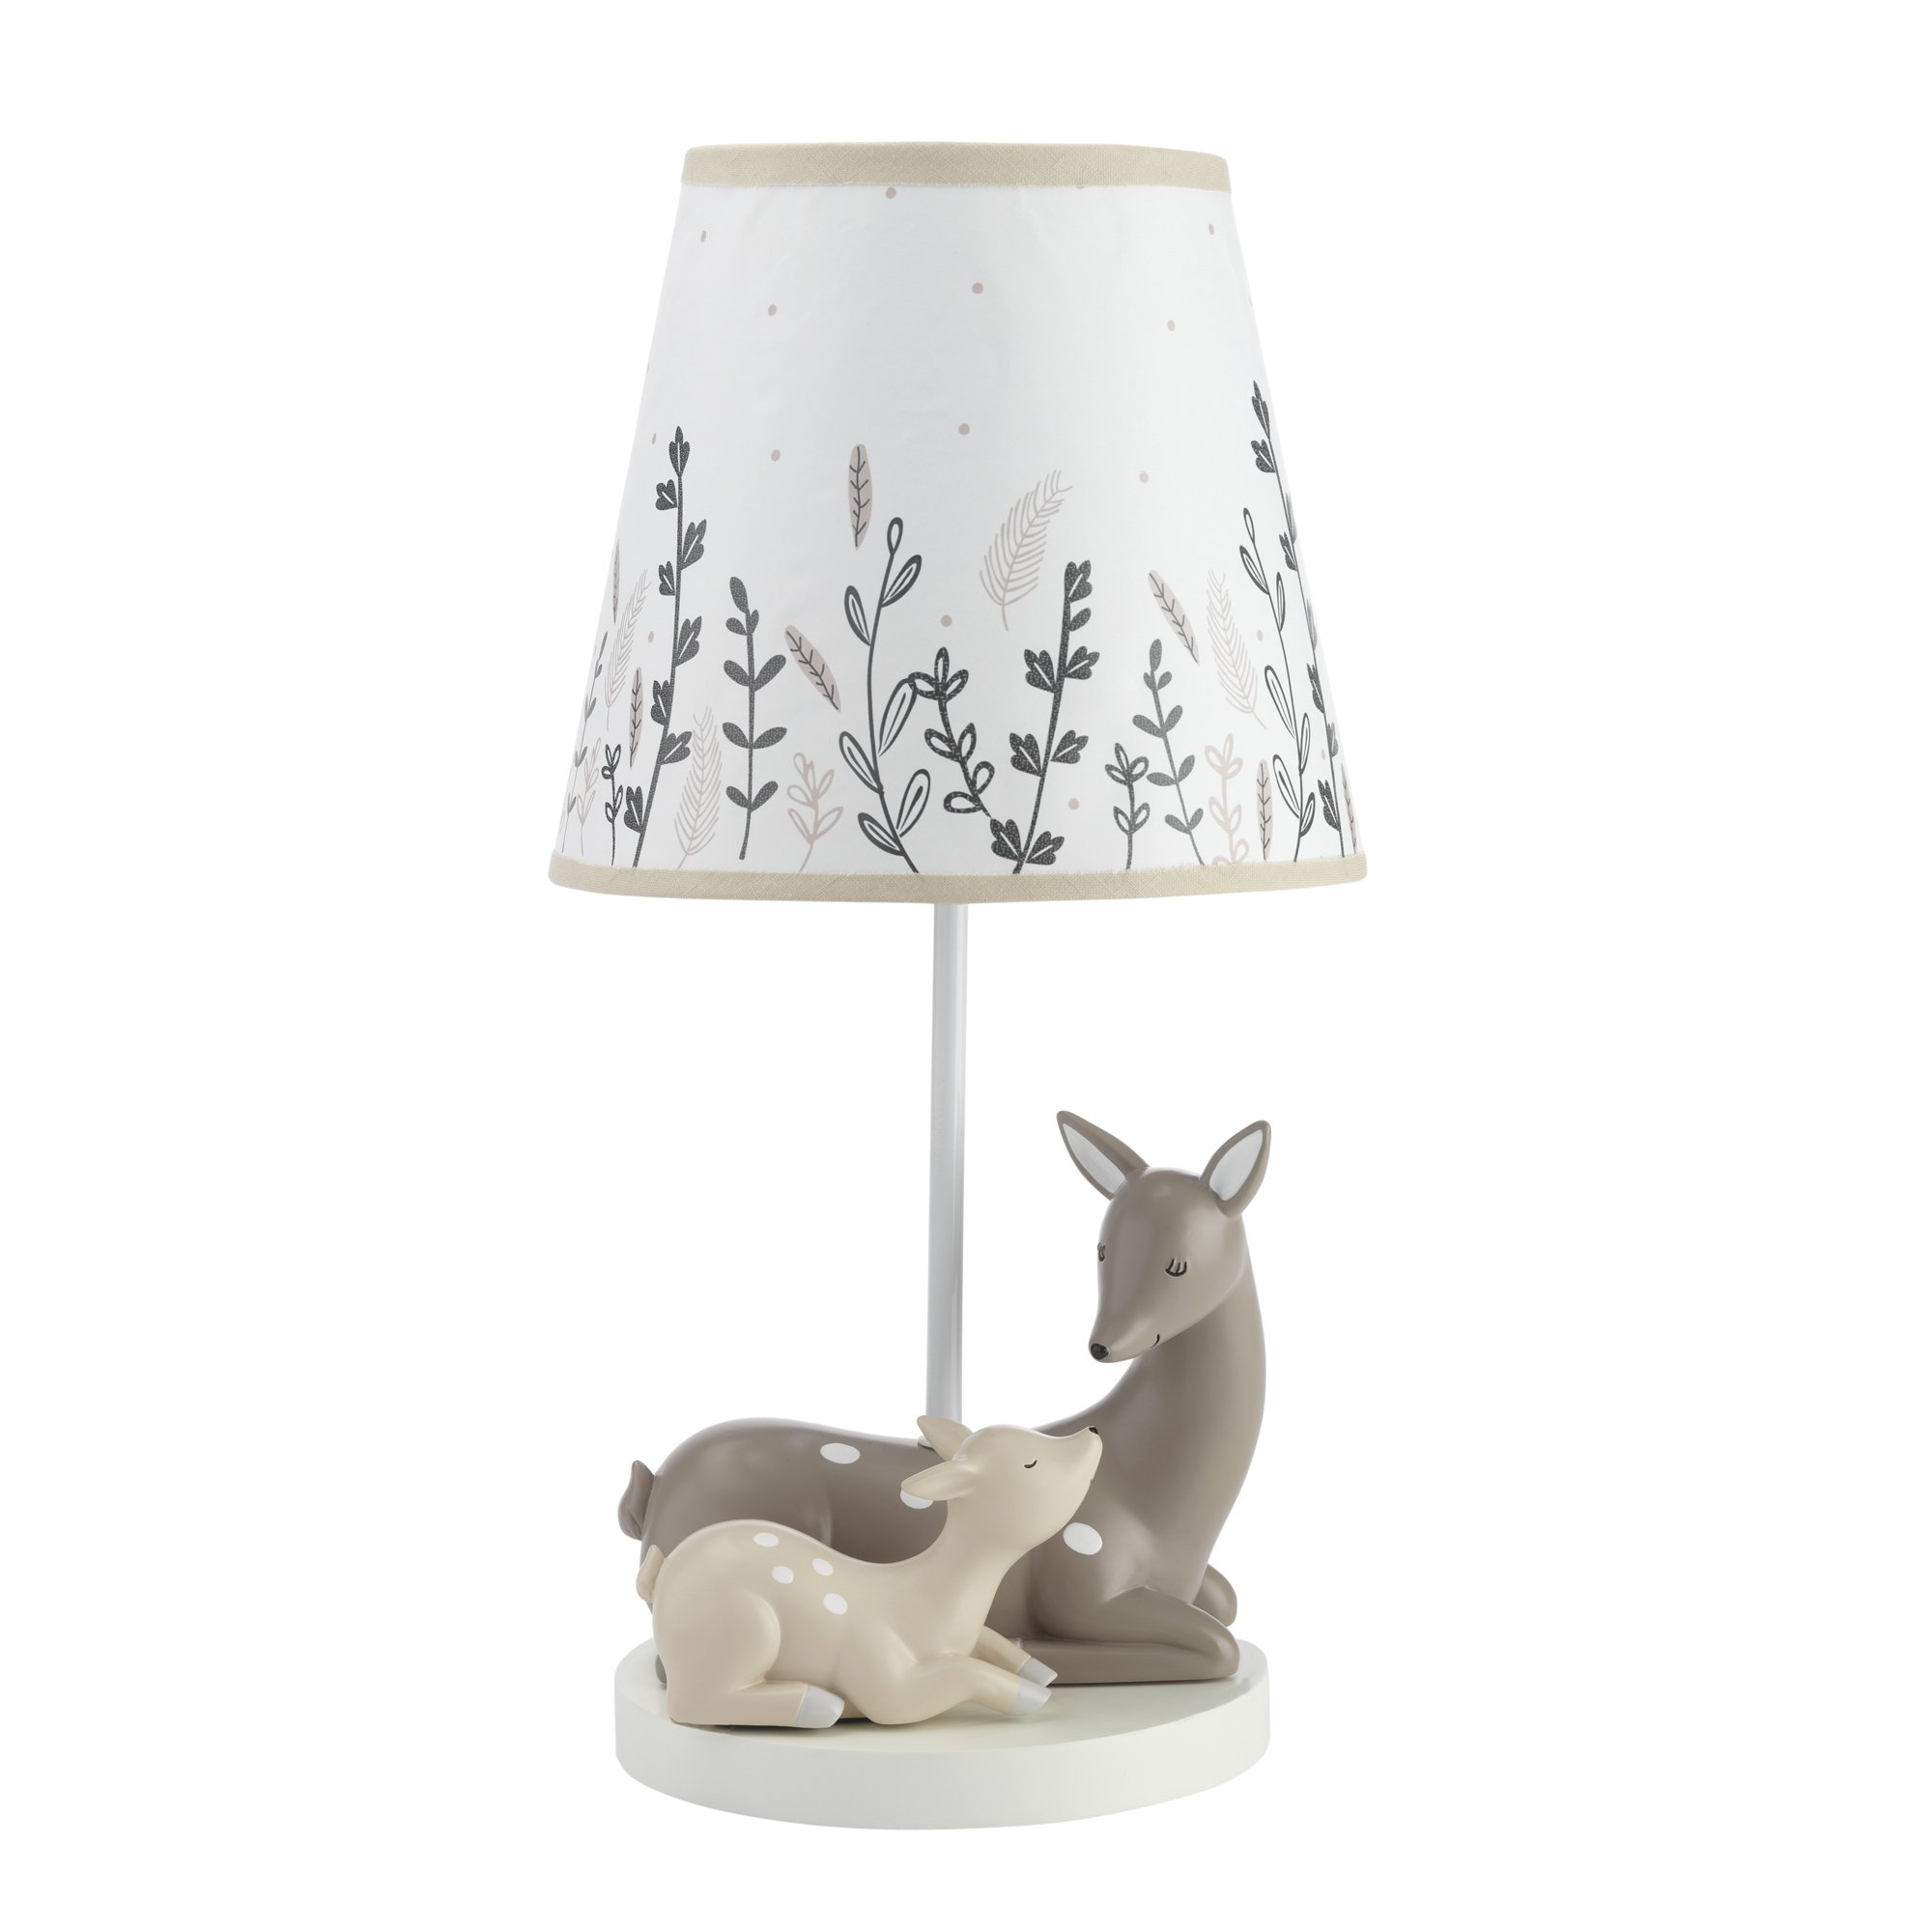 Lambs & Ivy Meadow Lamp With Shade & Bulb, Cream/White by Lambs & Ivy